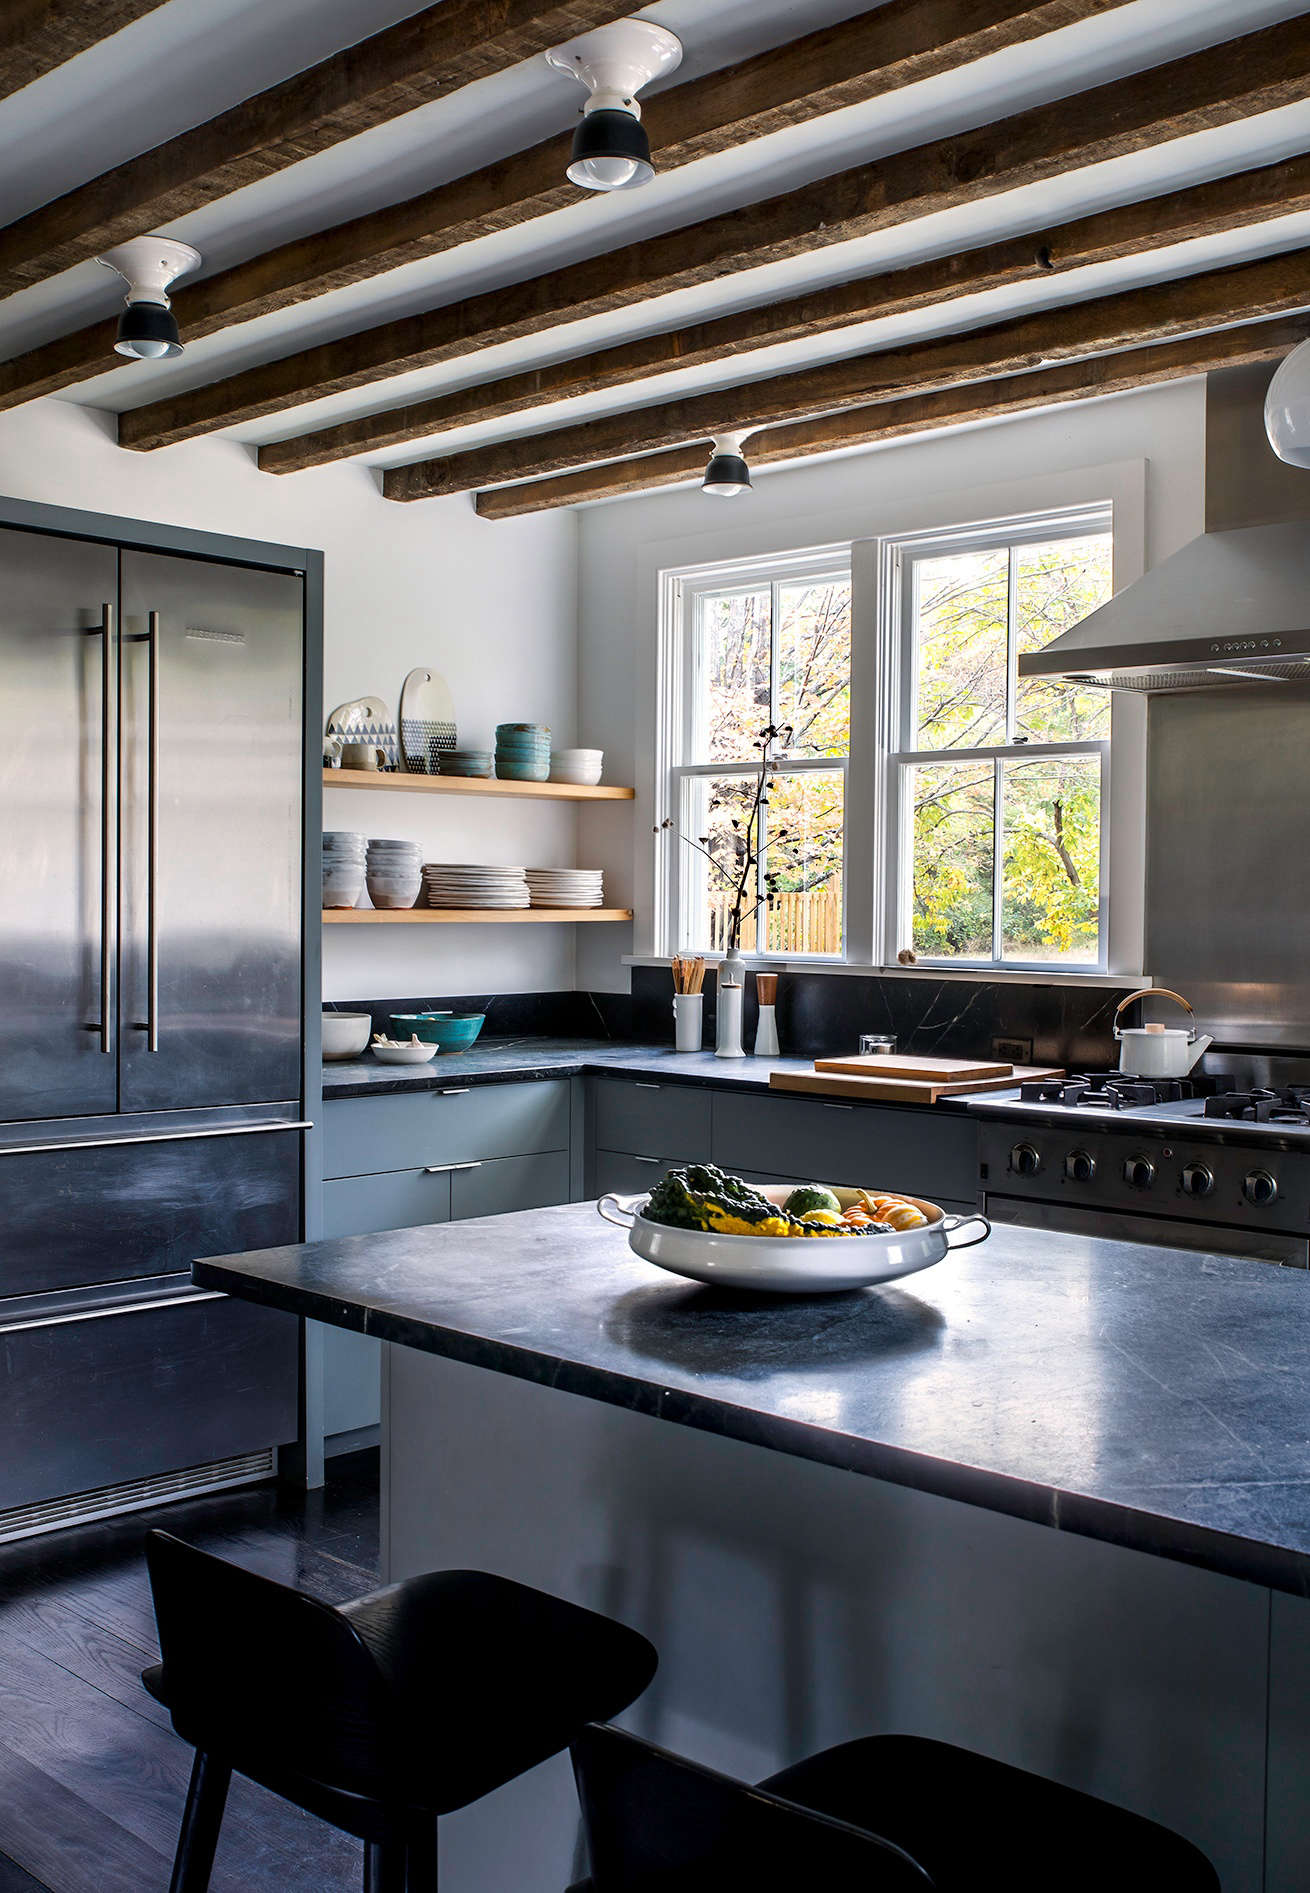 Kitchen of the week hudson valley farmhouse kitchen reborn dunjas mission was to enhance the sense of light and air in the small space workwithnaturefo